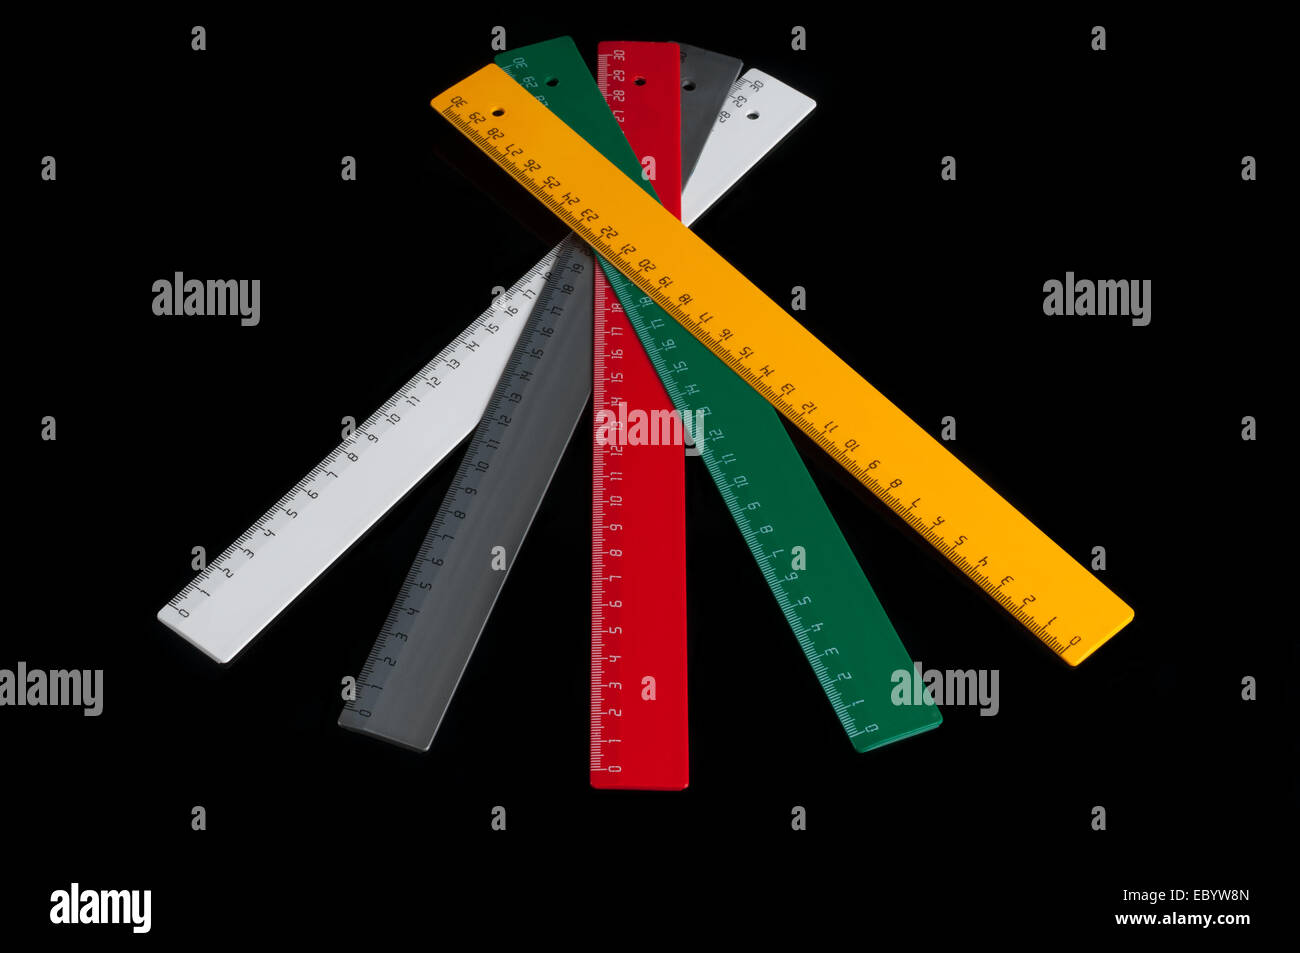 Set of colorful rulers isolated on black - Stock Image